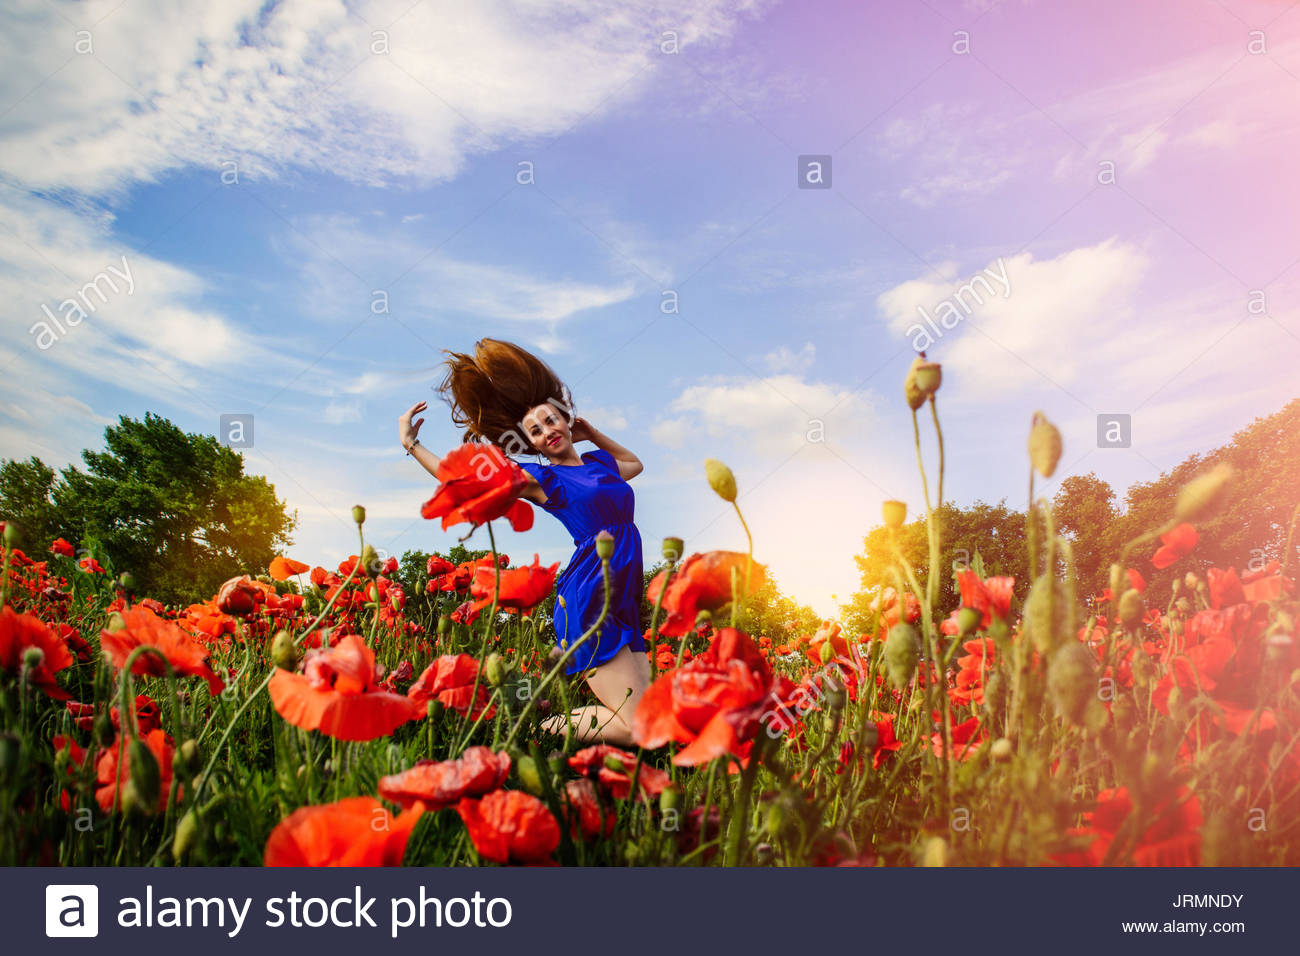 Girl jumping out of flowers - Stock Image